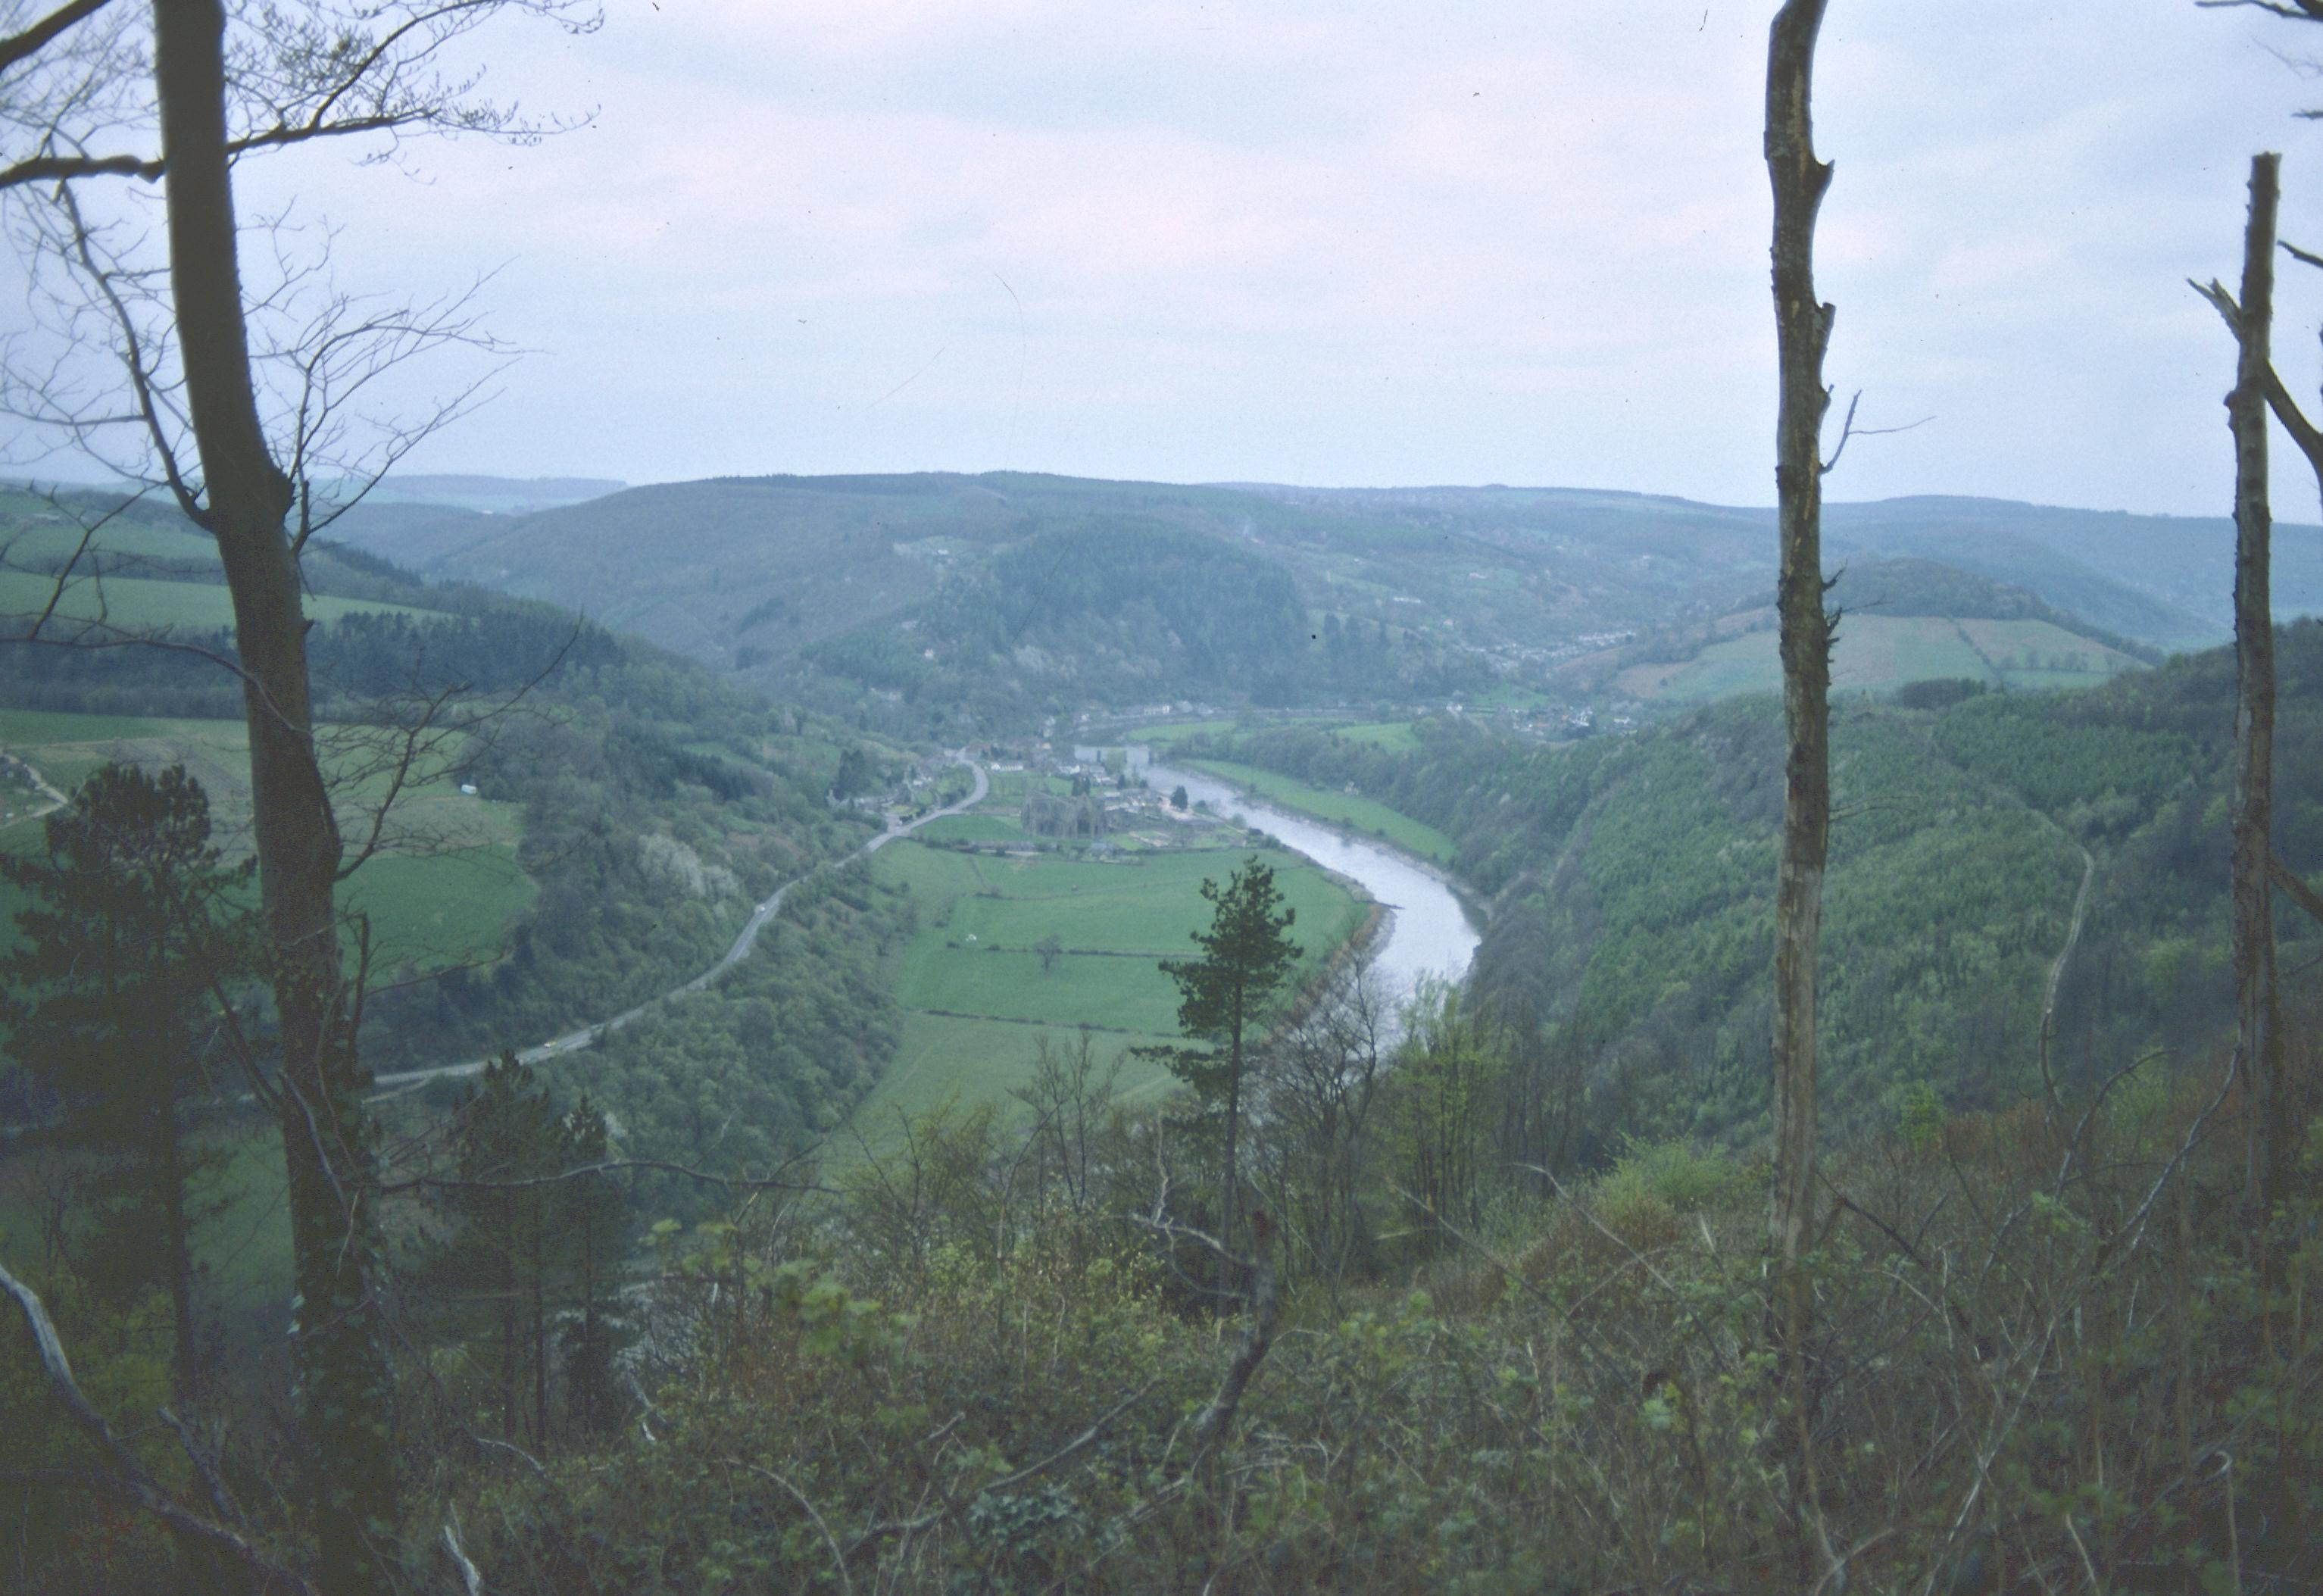 Near the Devil's Pulpit – Tintern Abbey and the Wye Valley below